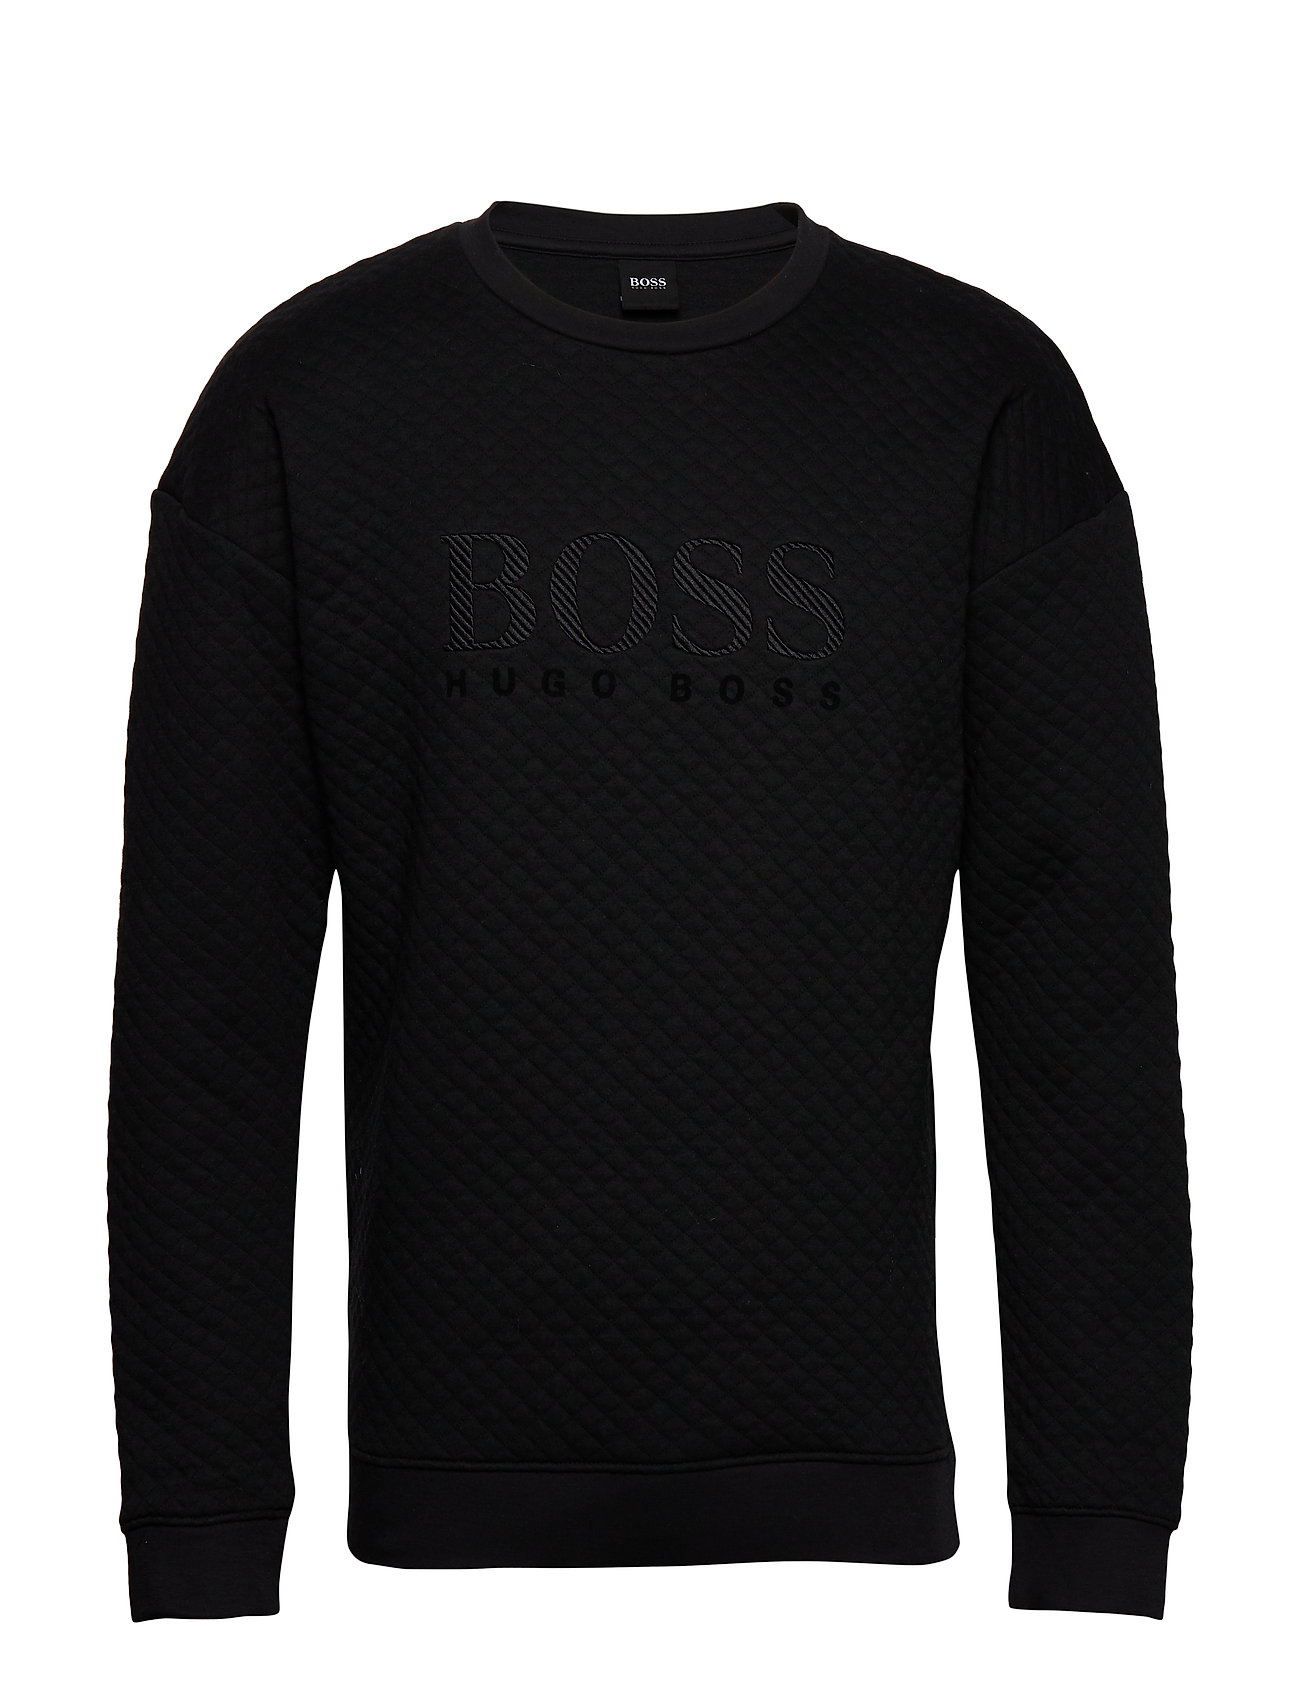 BOSS Business Wear Contem. Sweatshirt - BLACK